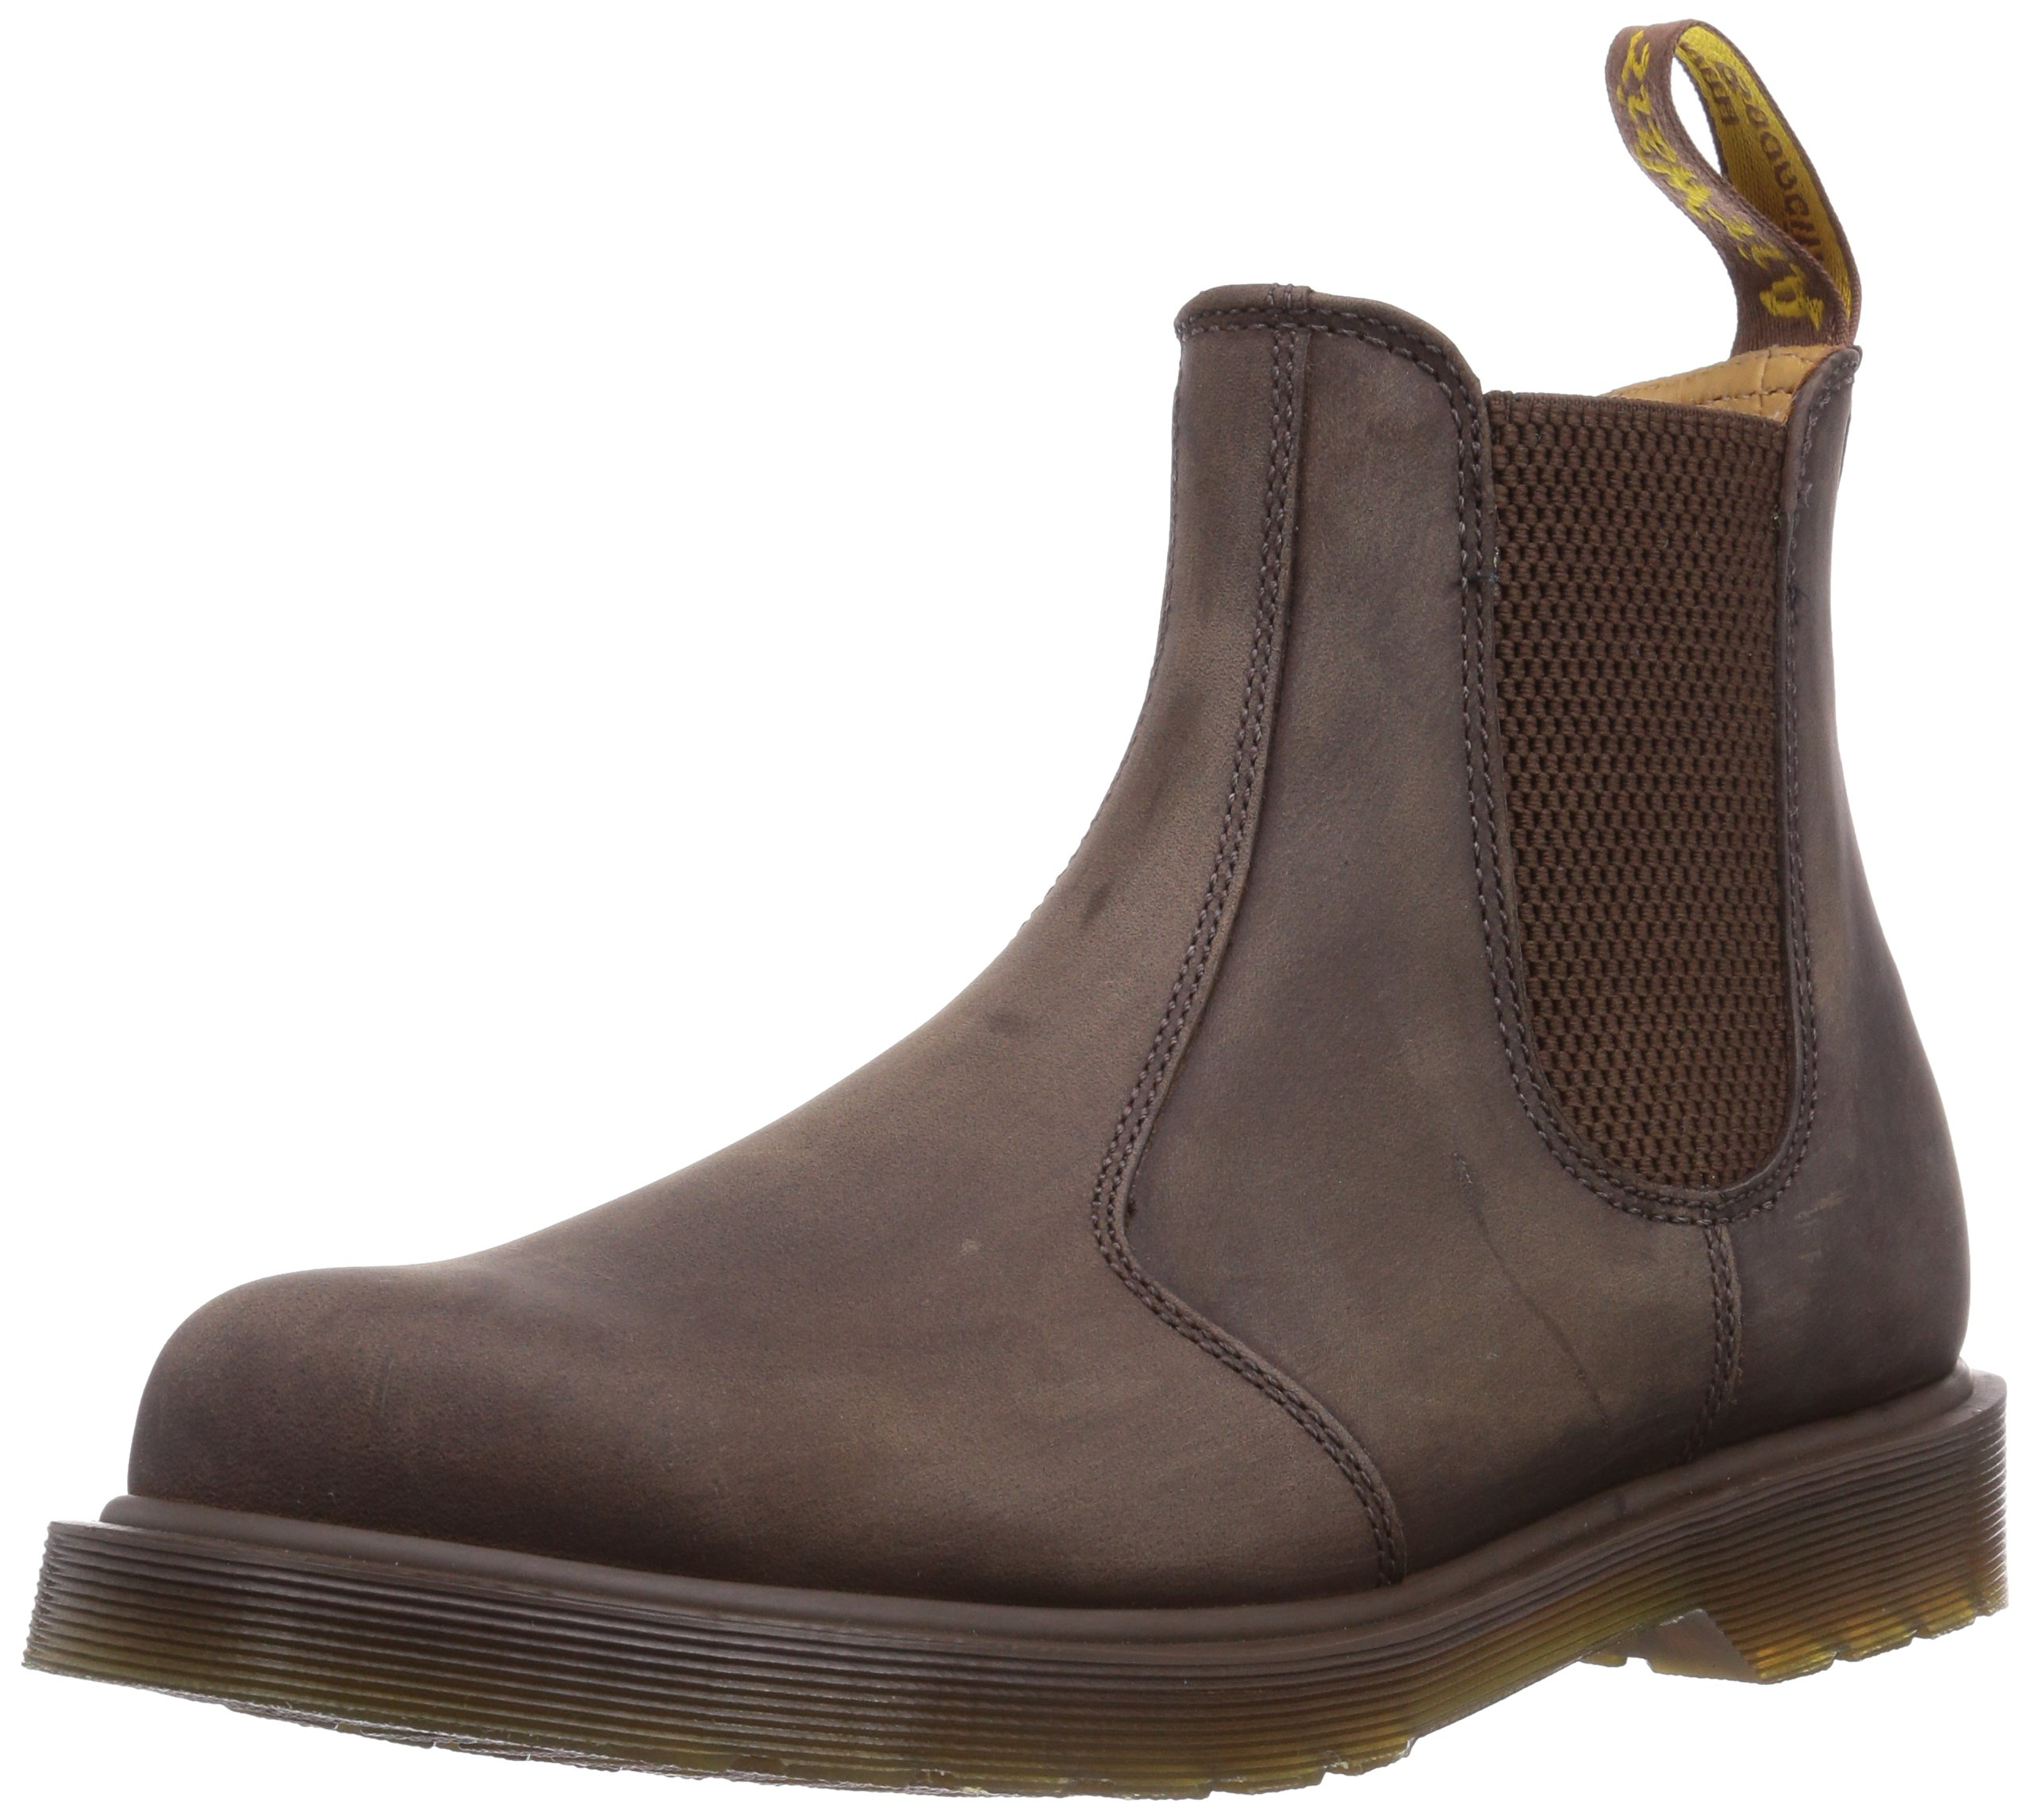 Dr. Martens Men's 2976 Crazy Horse Chelsea Boot, Gaucho, 9 UK/10 M US by Dr. Martens